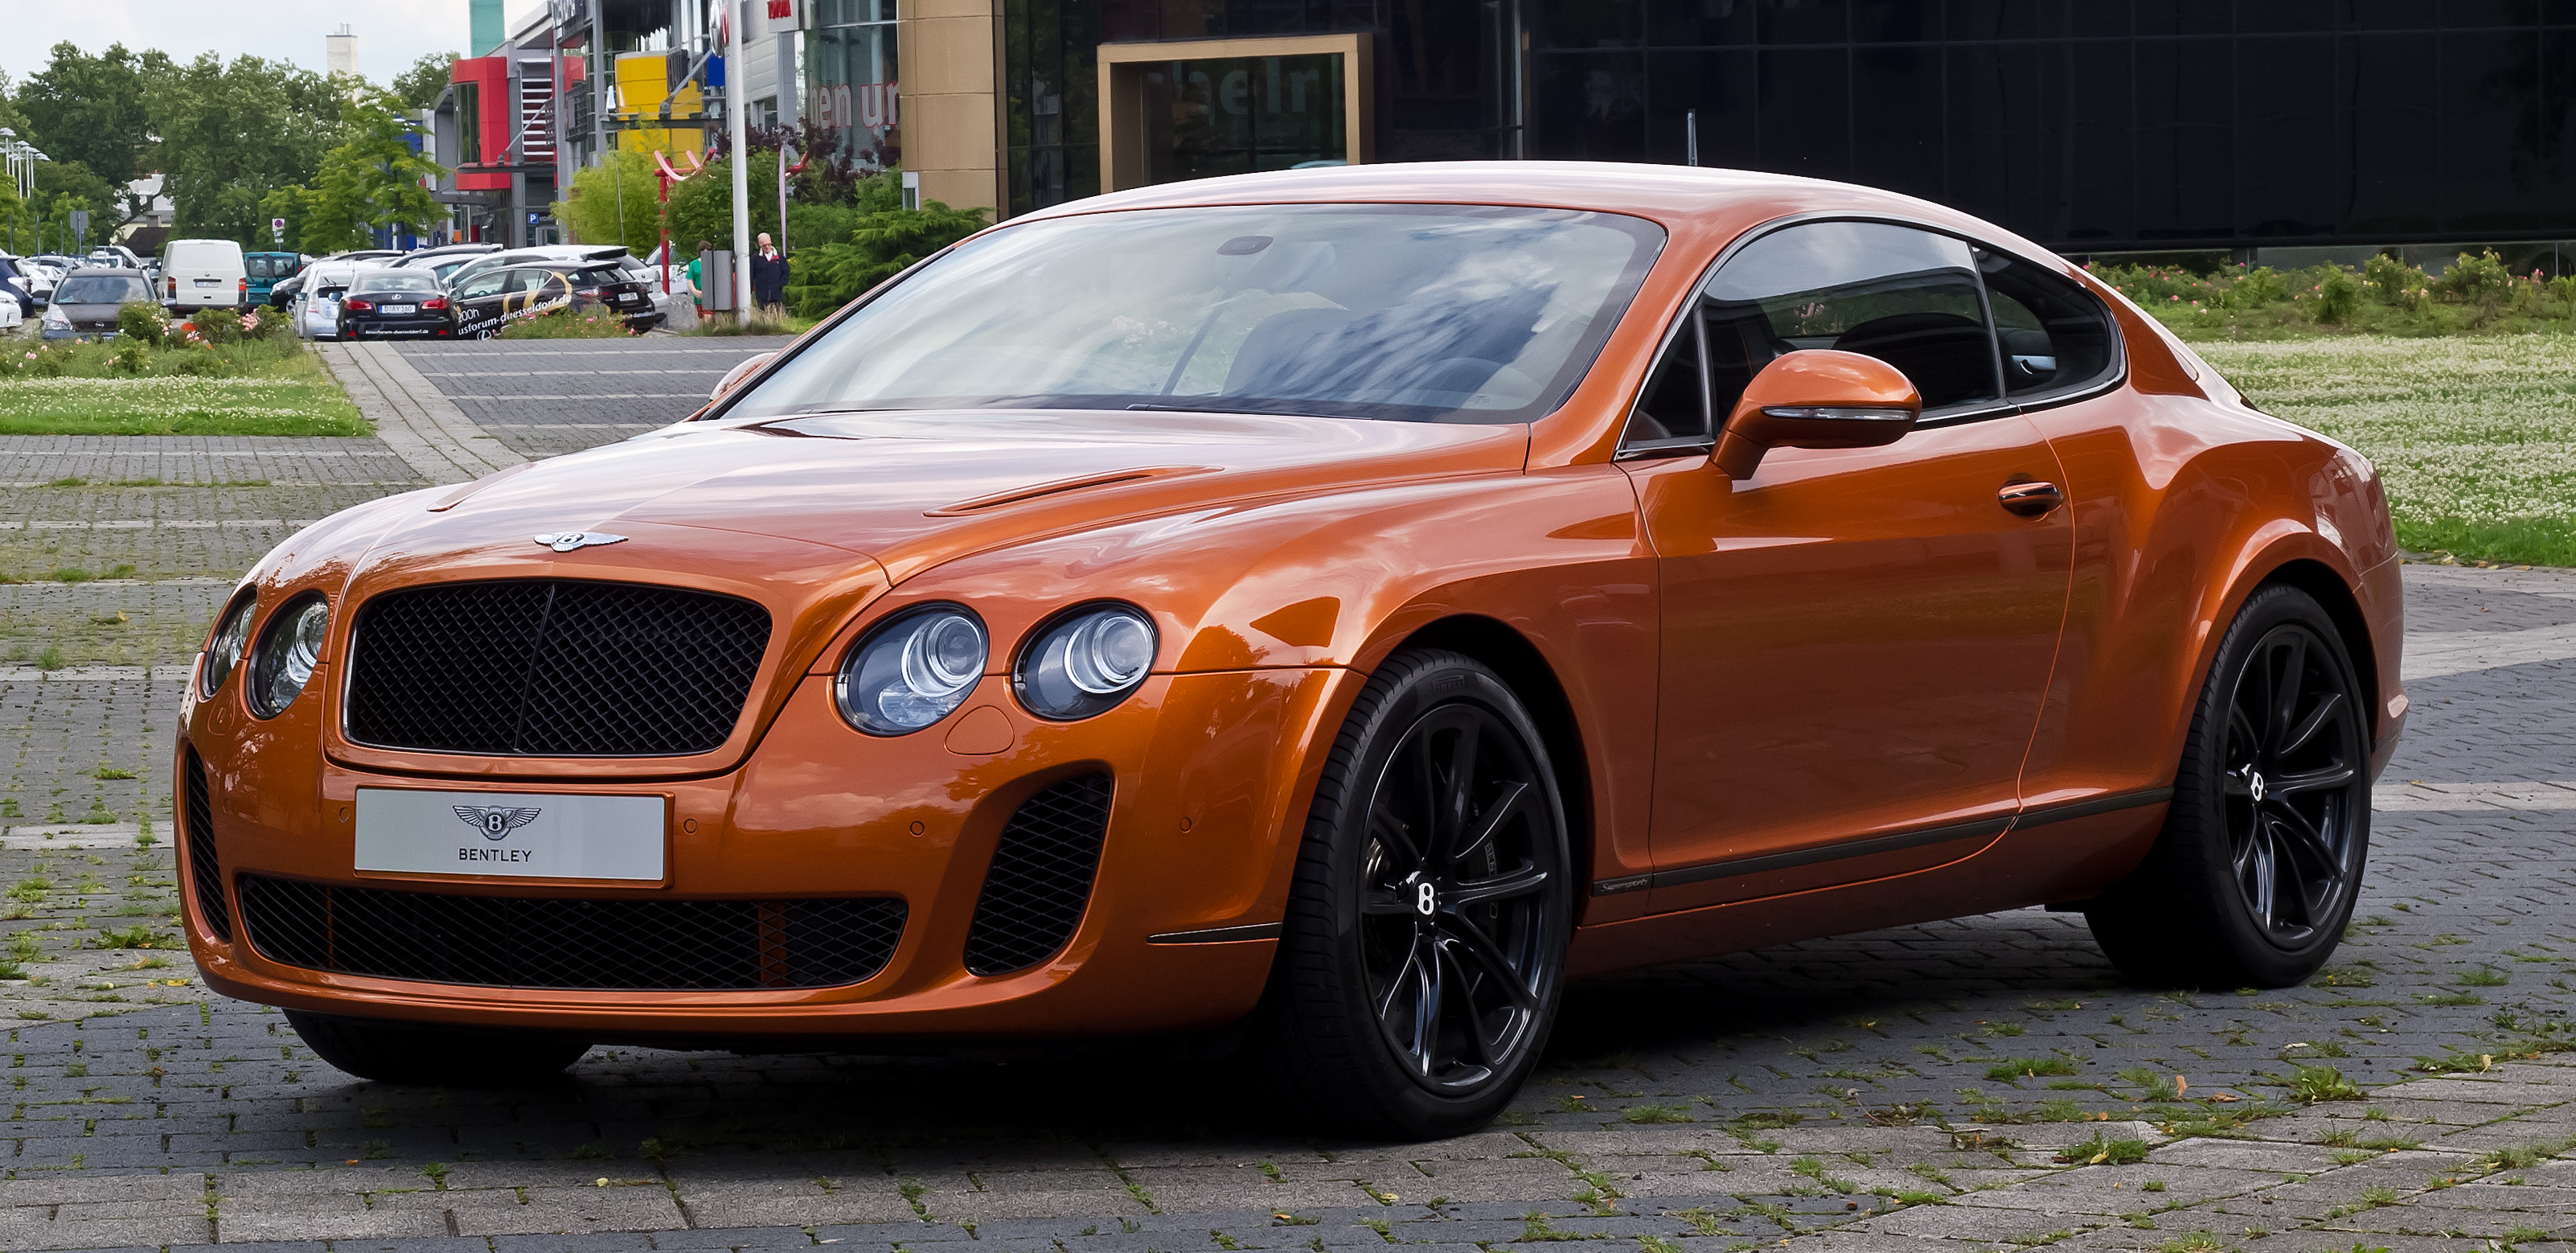 Delightful File:Bentley Continental Supersports U2013 Frontansicht (2), 18. Juli 2012,